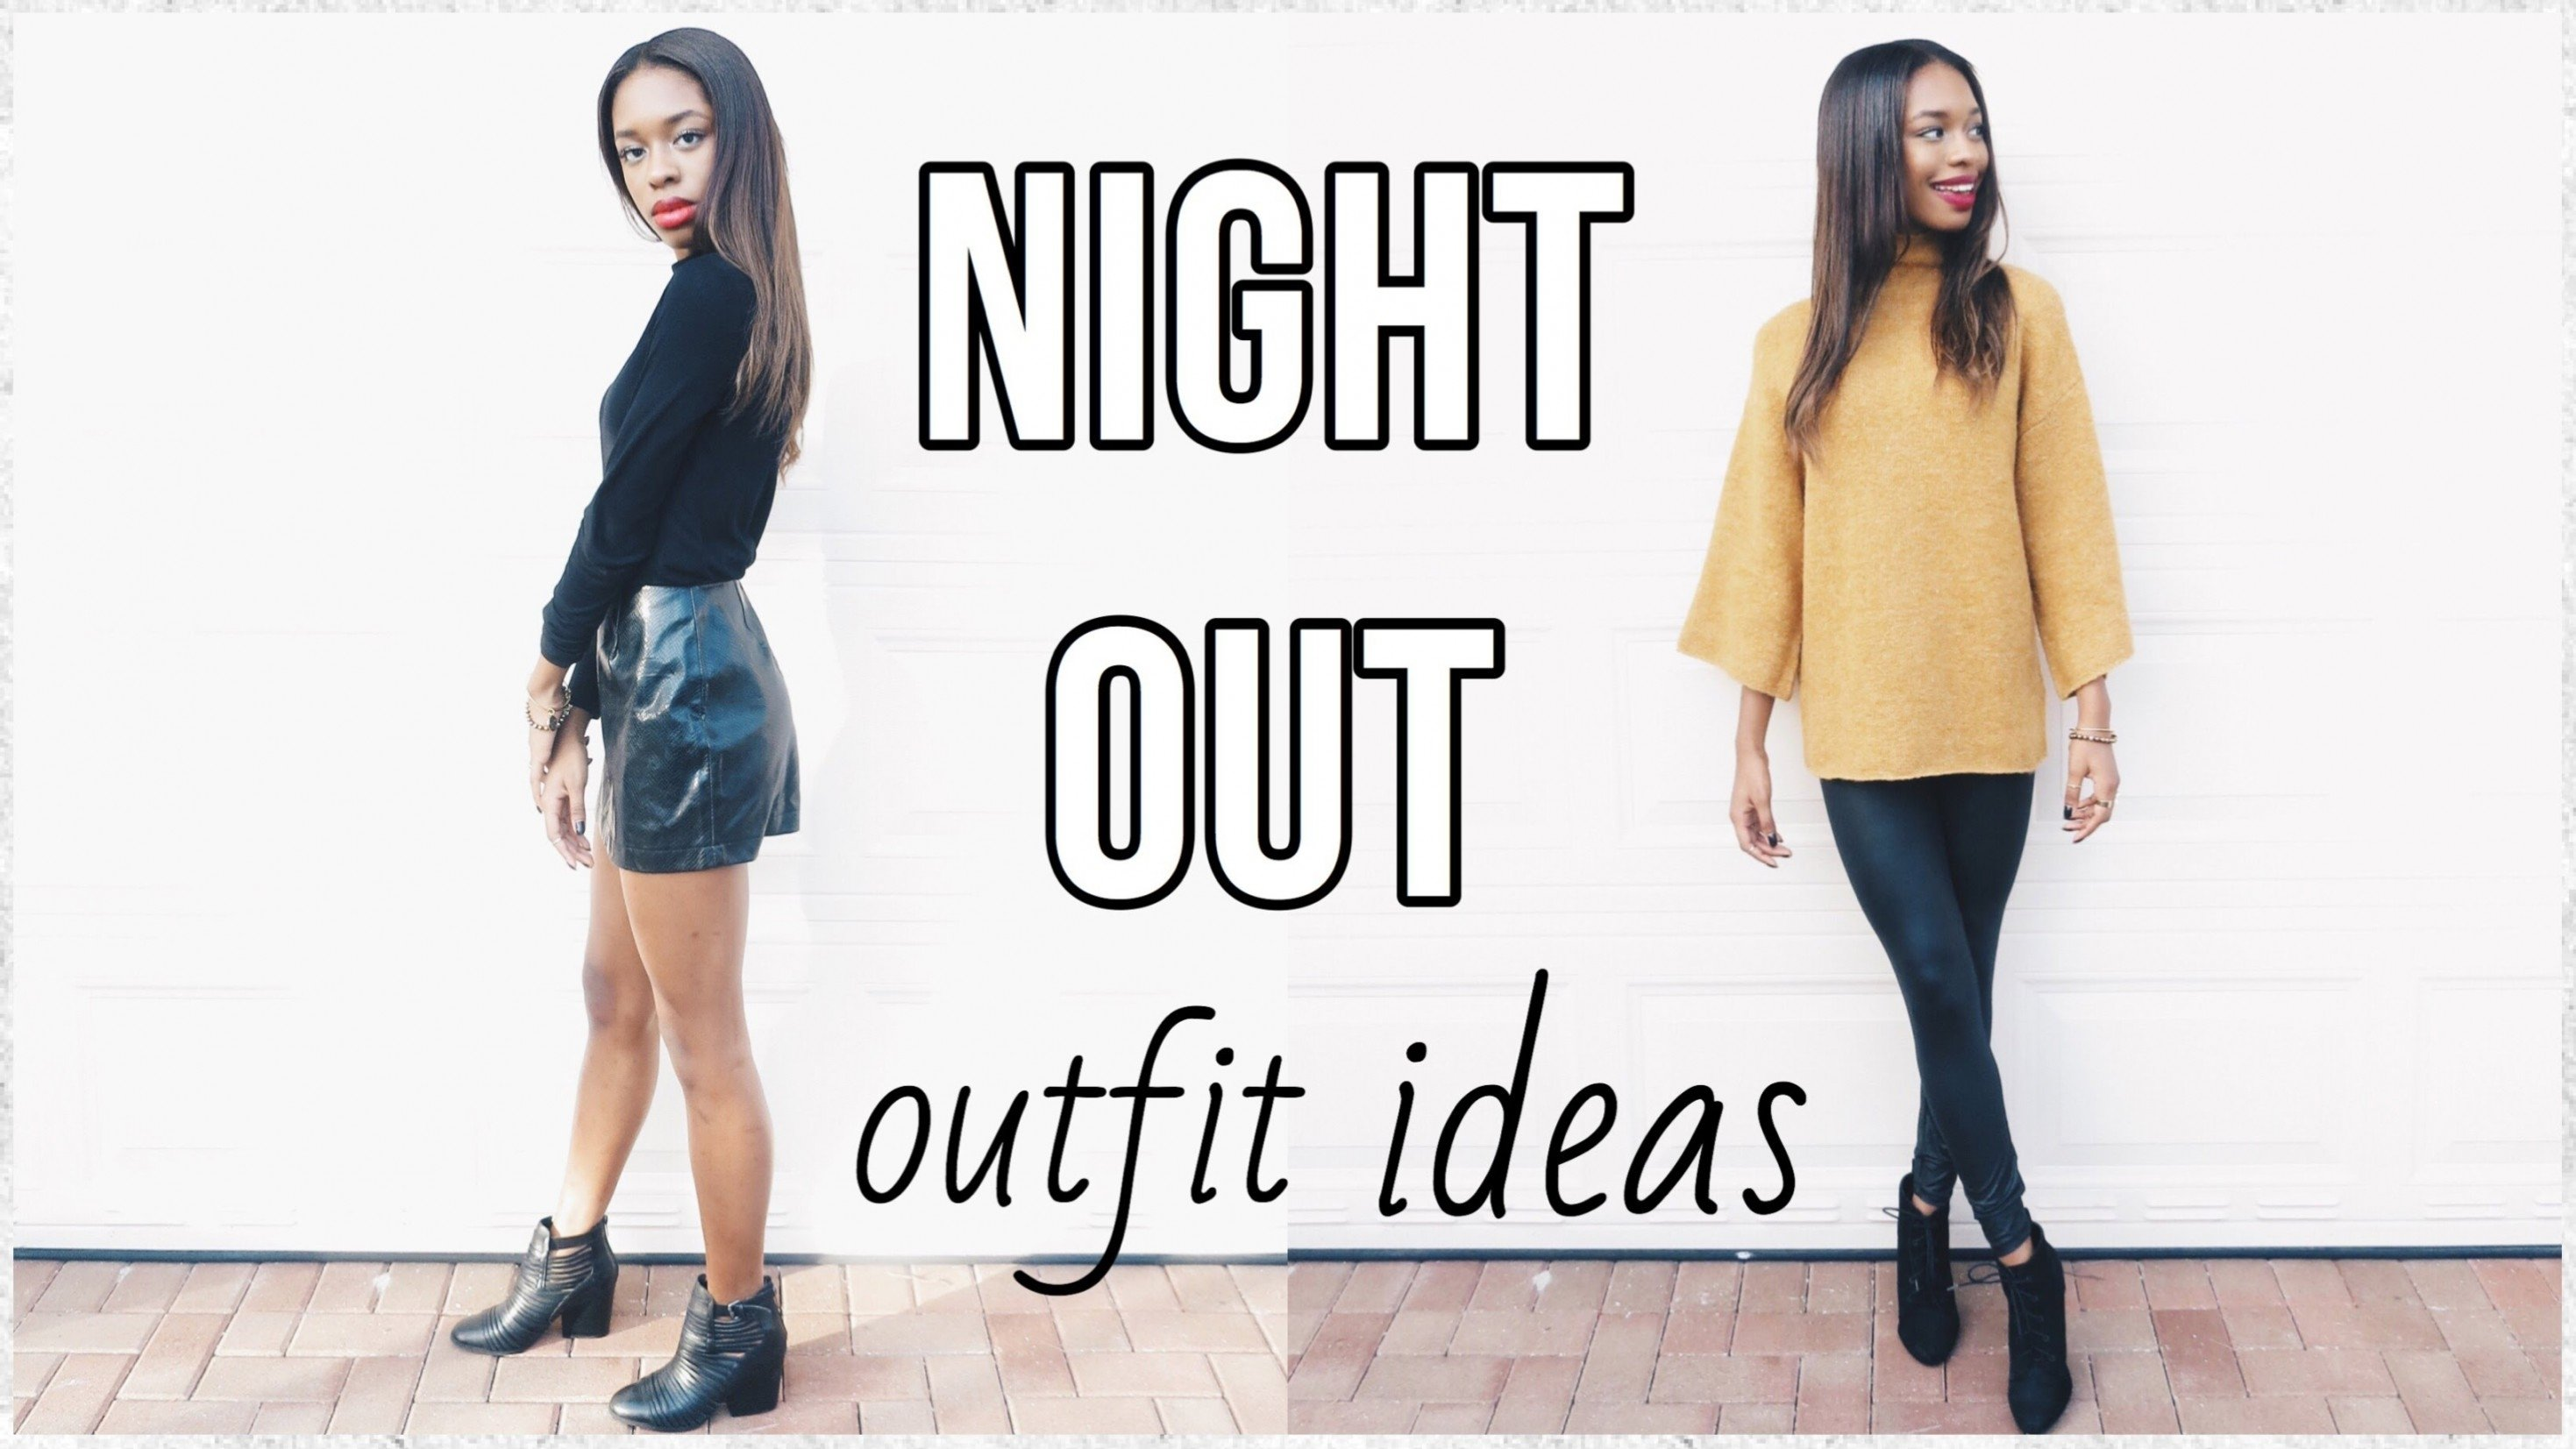 10 Stunning Girls Night Out Outfit Ideas night out outfit ideas e299a1 girls night out dinner etc youtube 2020